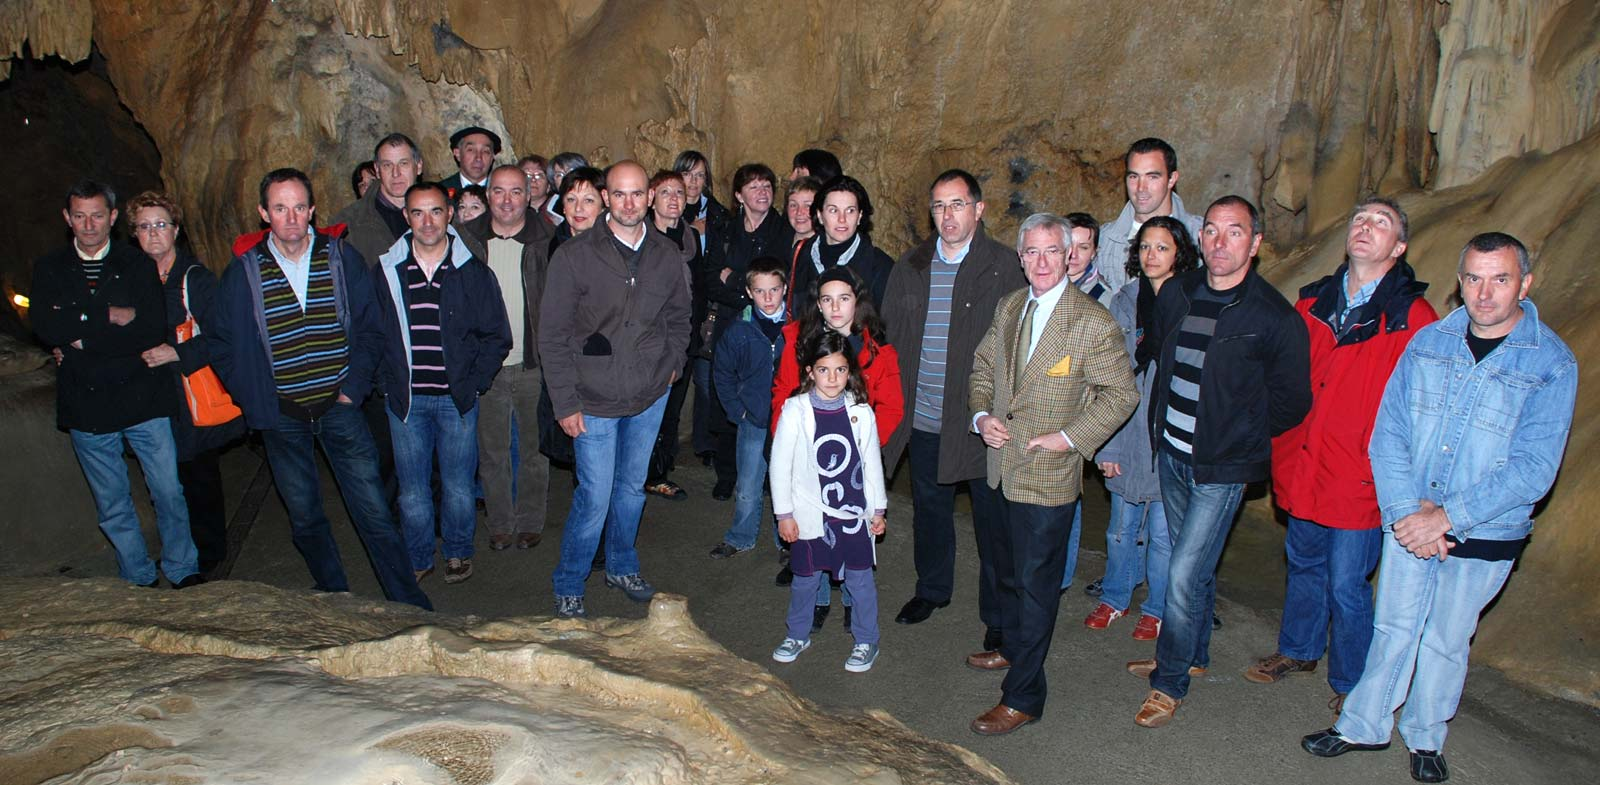 http://www.asson.fr/actualites/2009/0904/0904-grottes-1.jpg